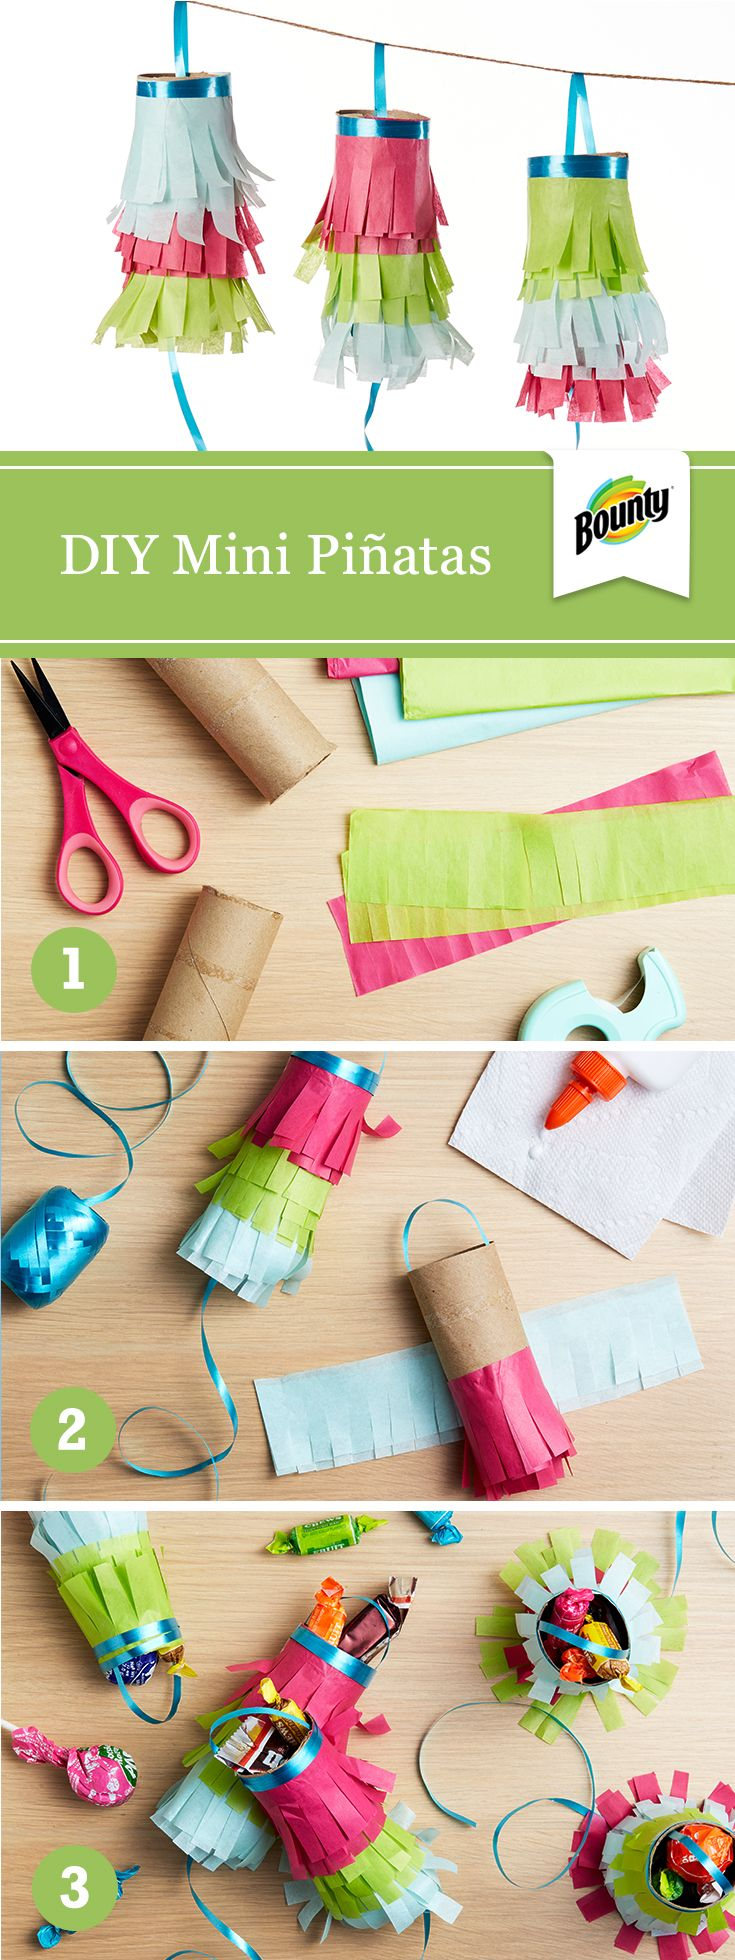 51 best craft ideas for adults images on pinterest home crafts spice up your cinco de mayo festivities with this diy mini piata craft for more do it yourself ideas visit orgullosa on pg everyday solutioingenieria Gallery